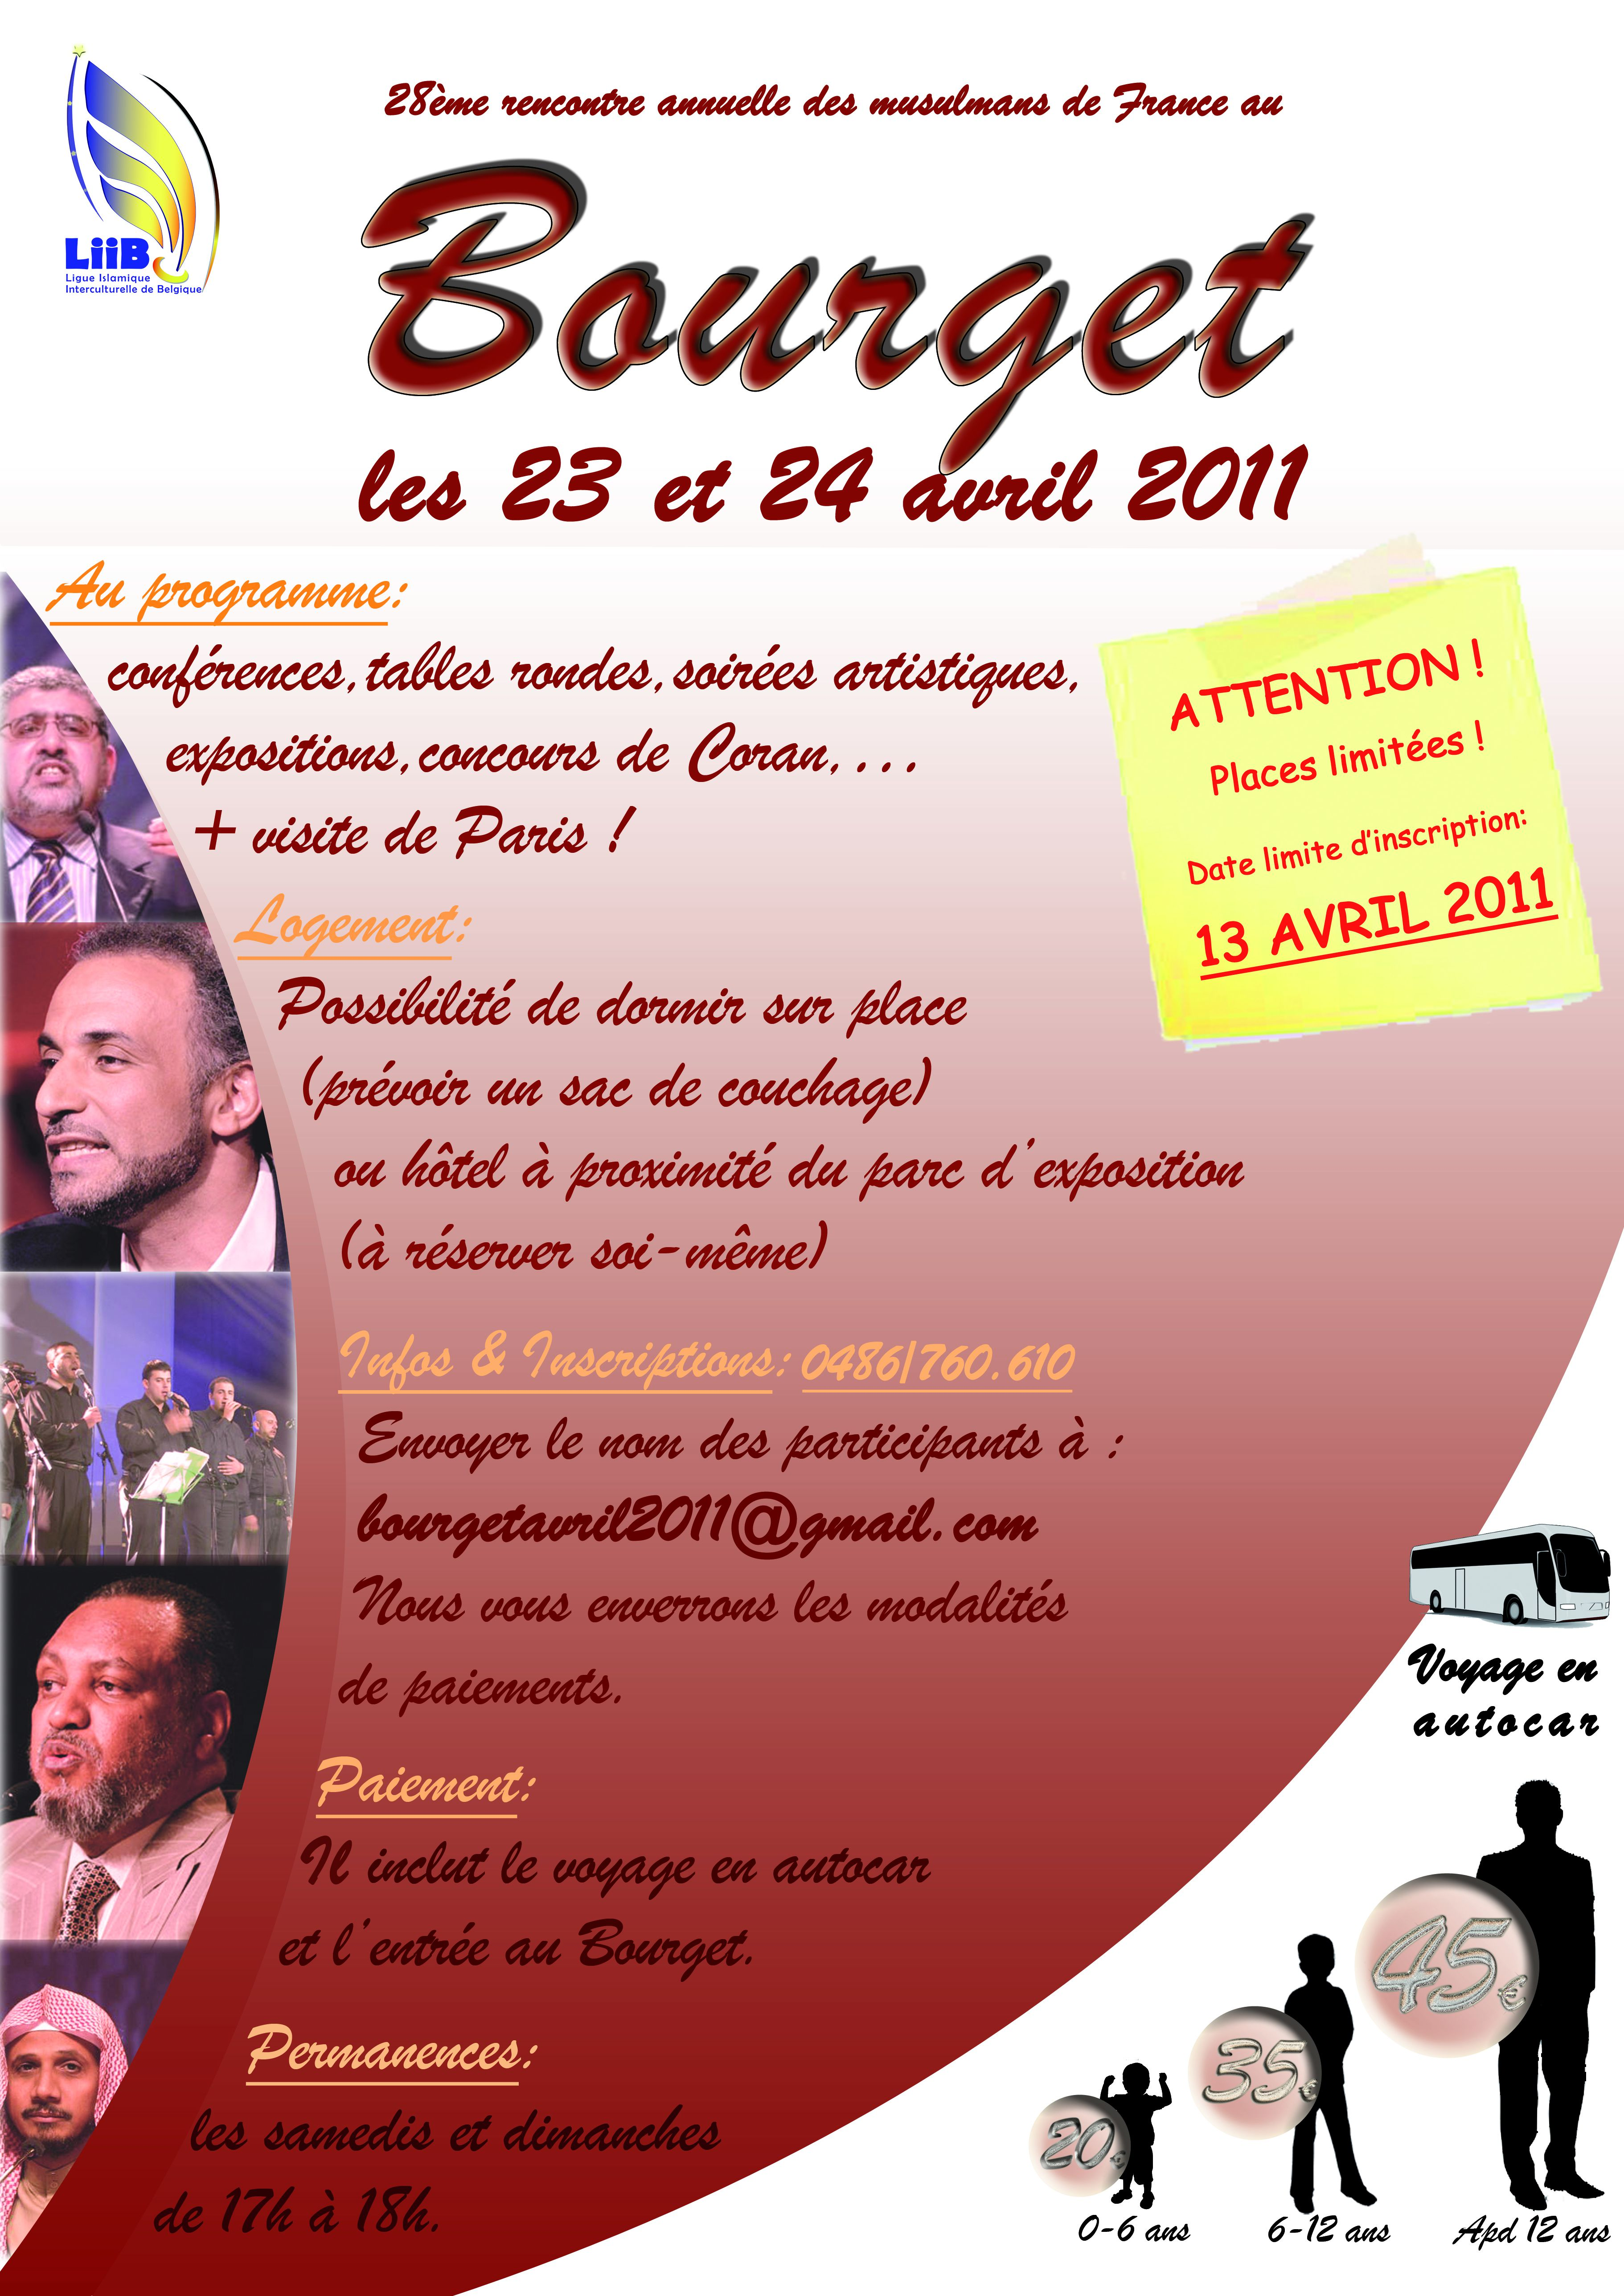 date rencontre musulmans france bourget